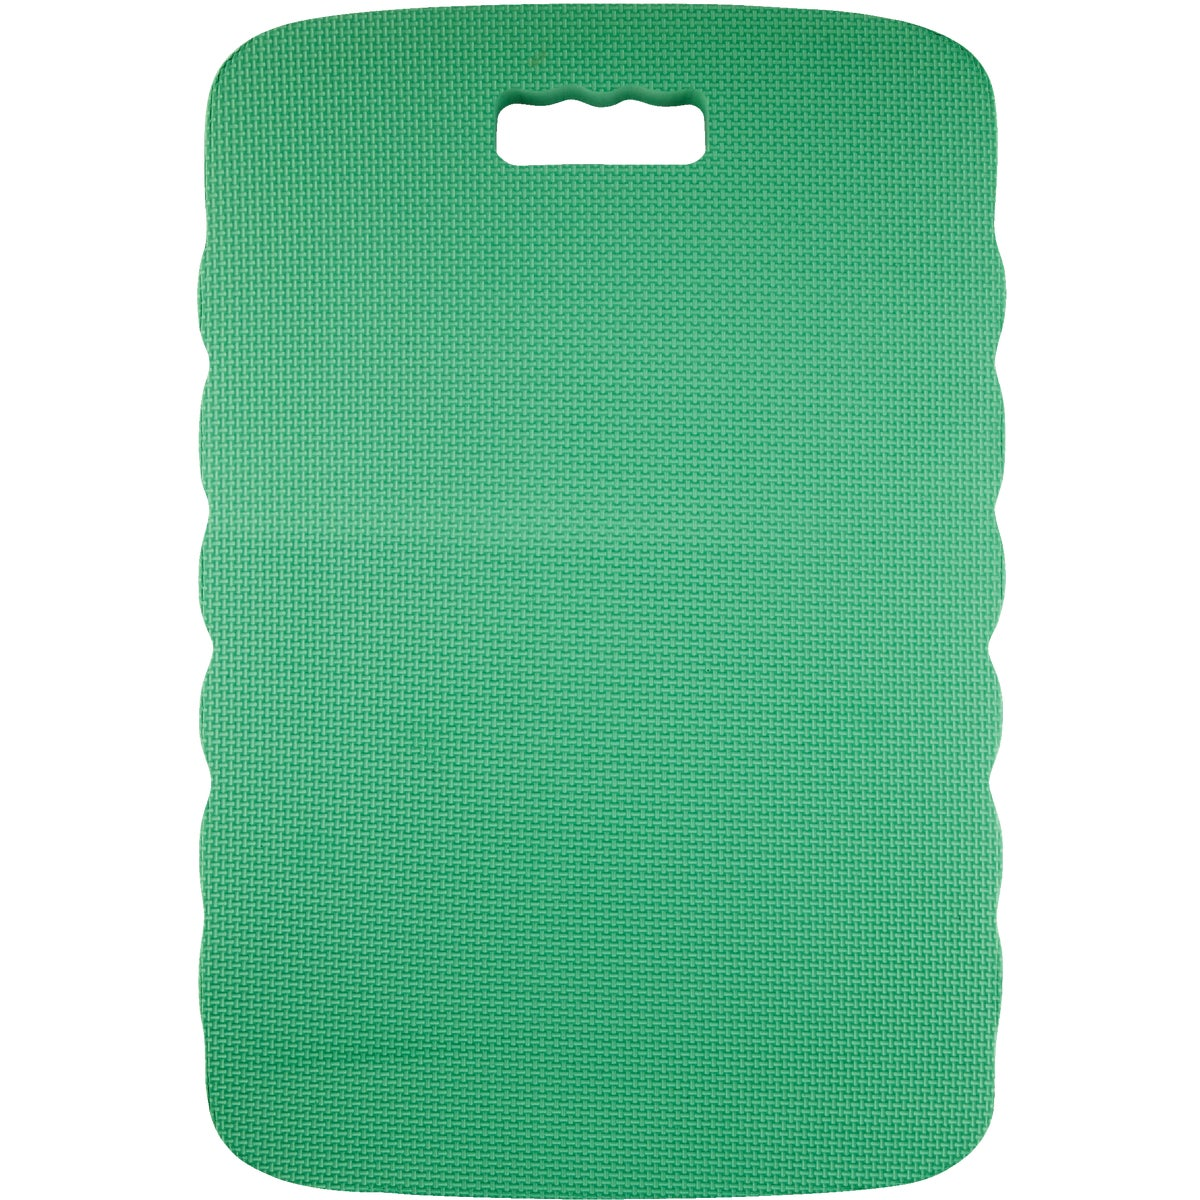 "22"" X 15"" KNEELER PAD - GM-7201-EVA by Do it Best"